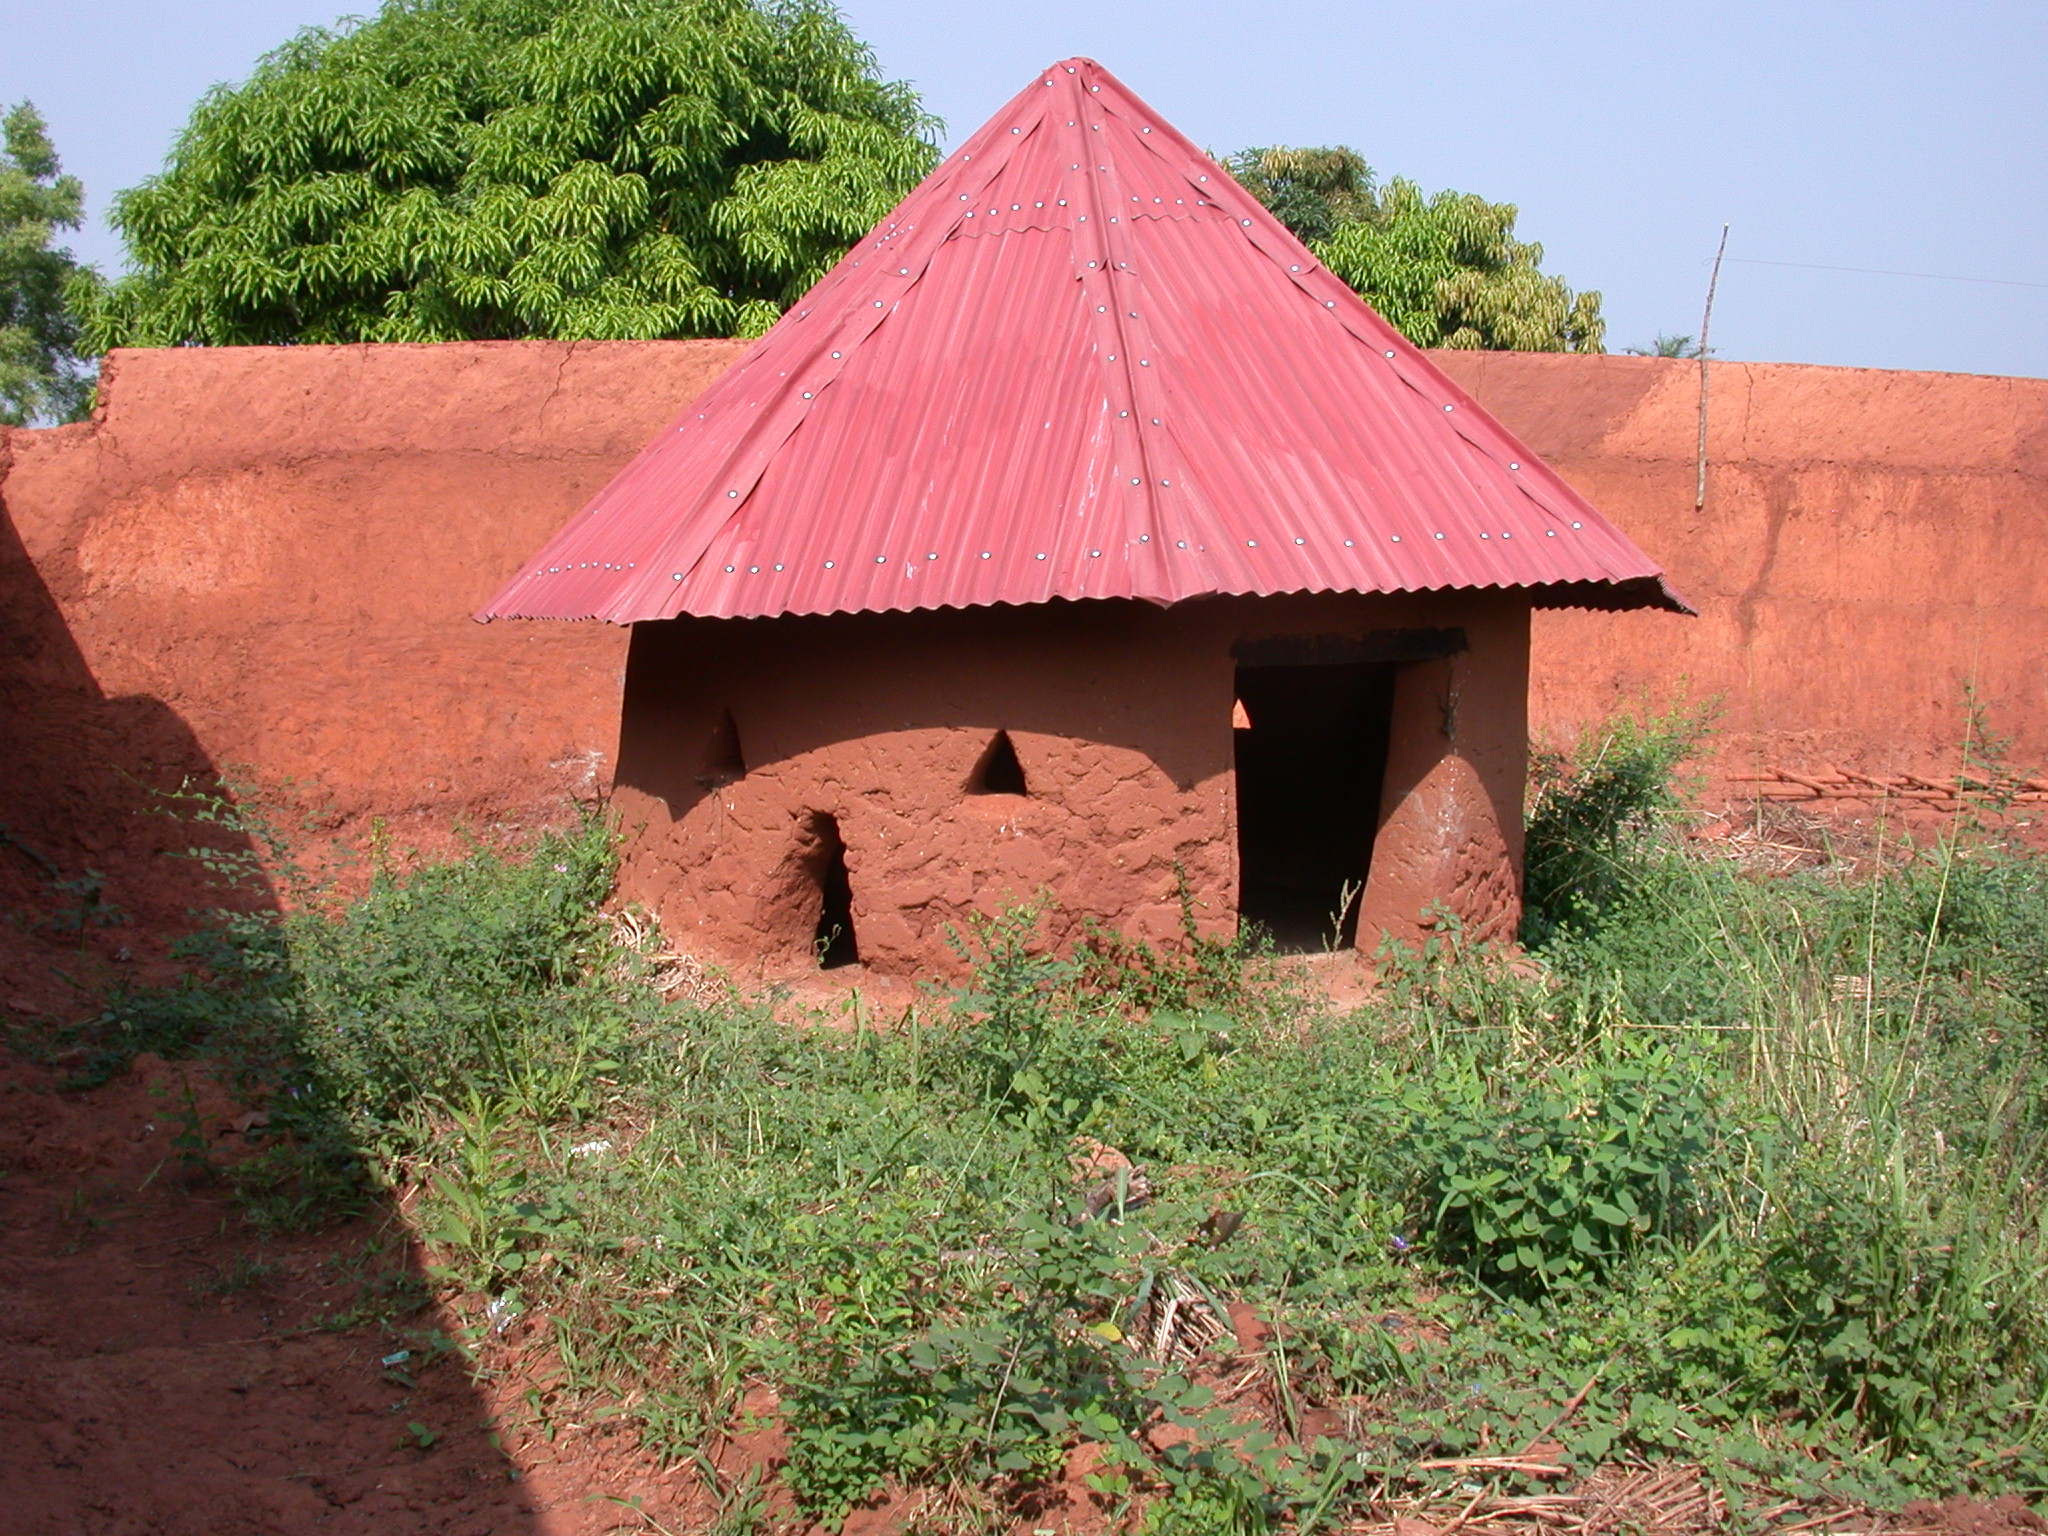 Reconstructed Hut, Palace of King Houegbadja, Abomey, Benin